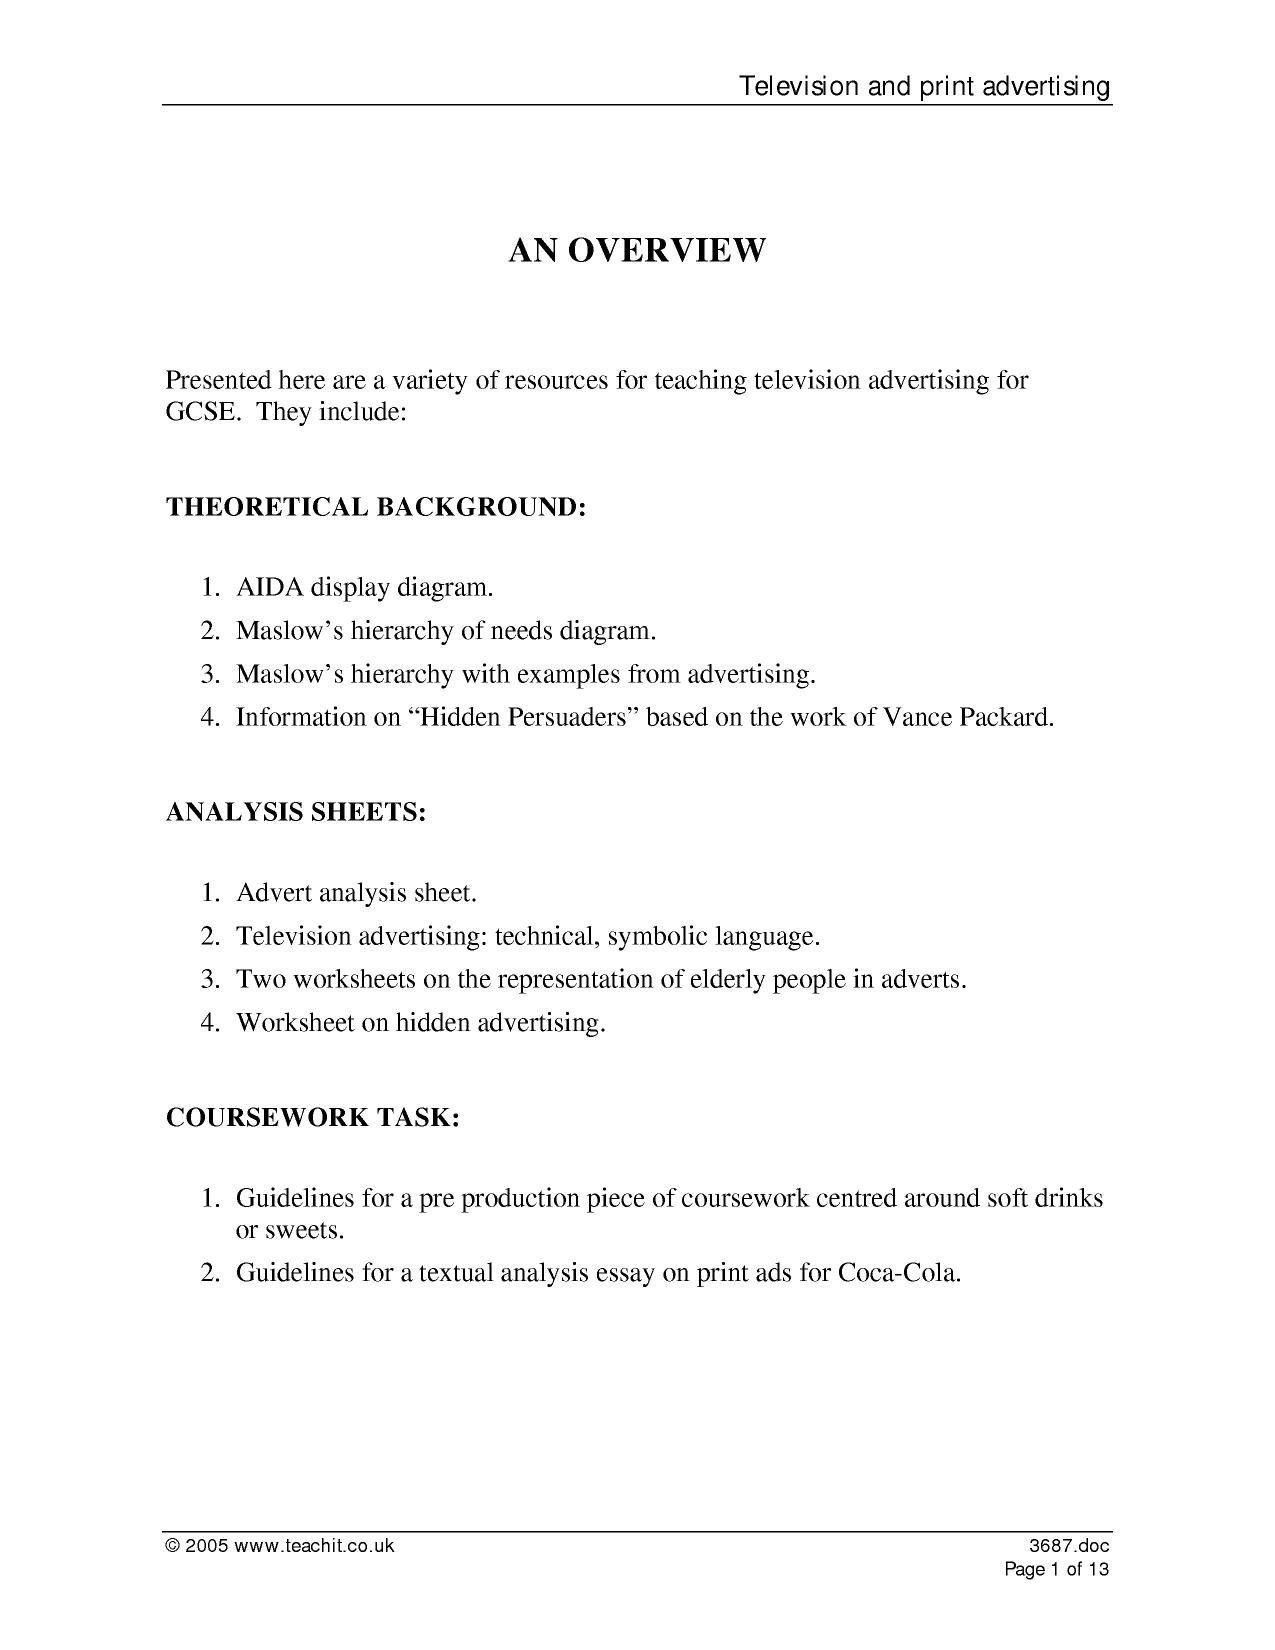 advertisement analysis essay outline jaago re ad analysis essay clasifiedad com clasified essay sample jaago re ad analysis essay clasifiedad com clasified essay sample